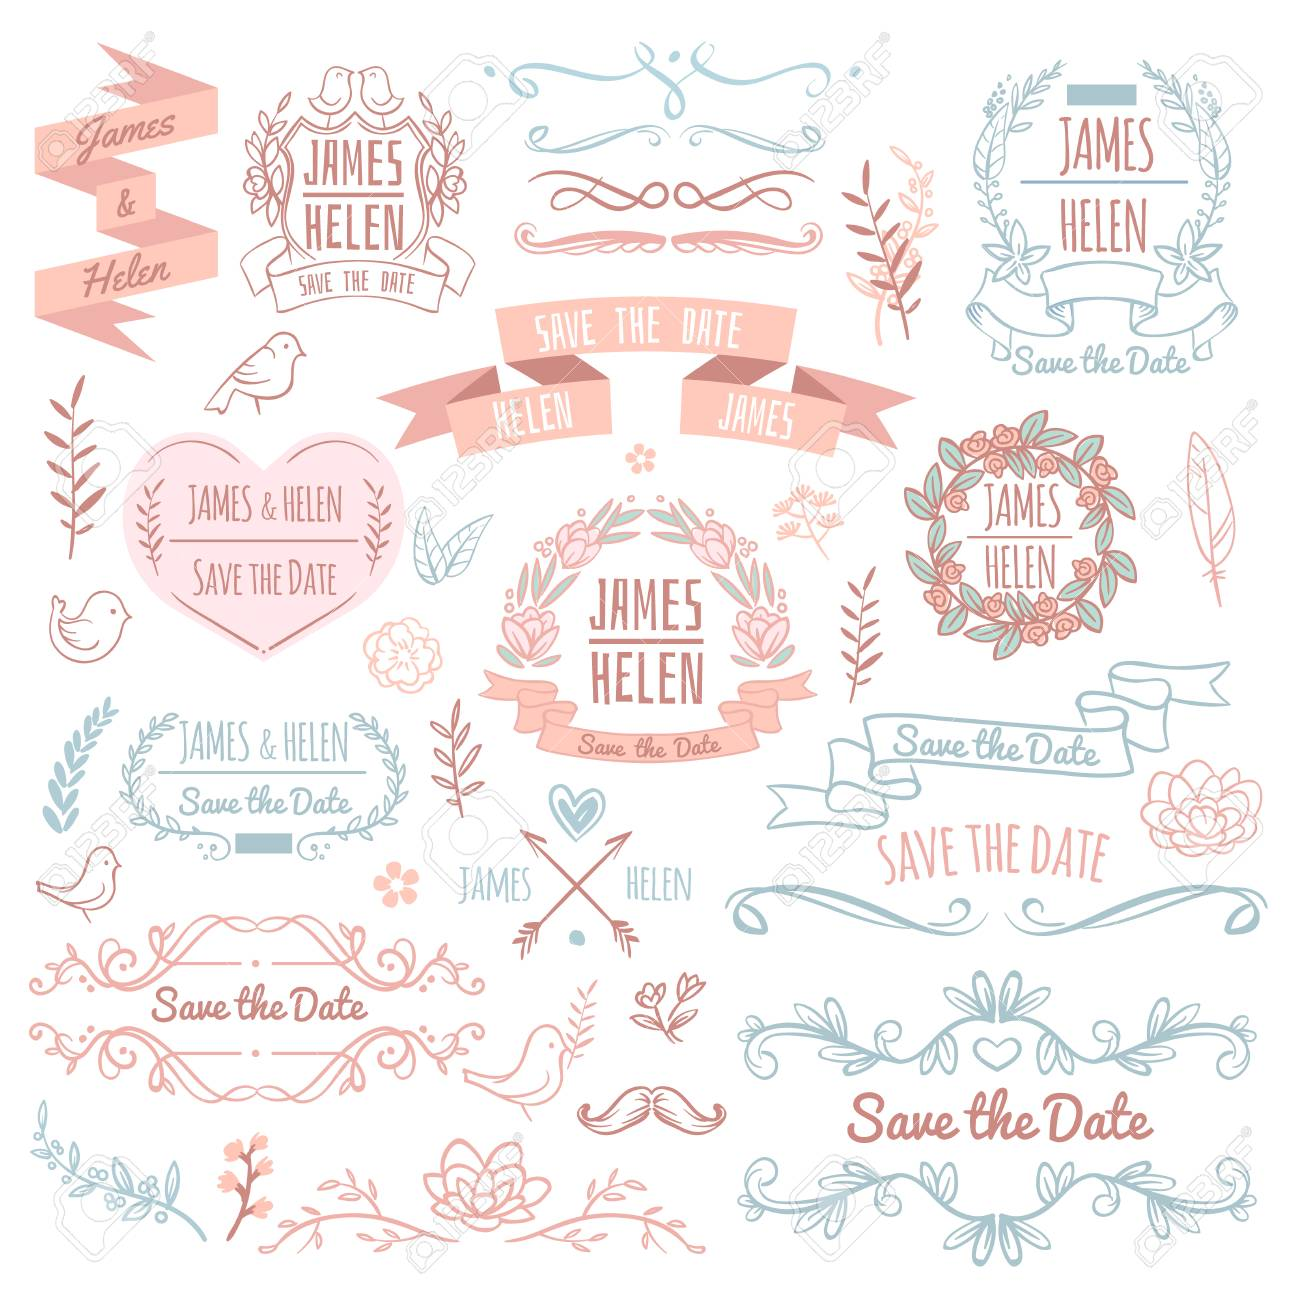 Lements De Vecteur Retro De Mariage Pour Carte D Invitation Design Floral Elegant Et Ornements Rustiques Illustration D Elements Retro Invitation